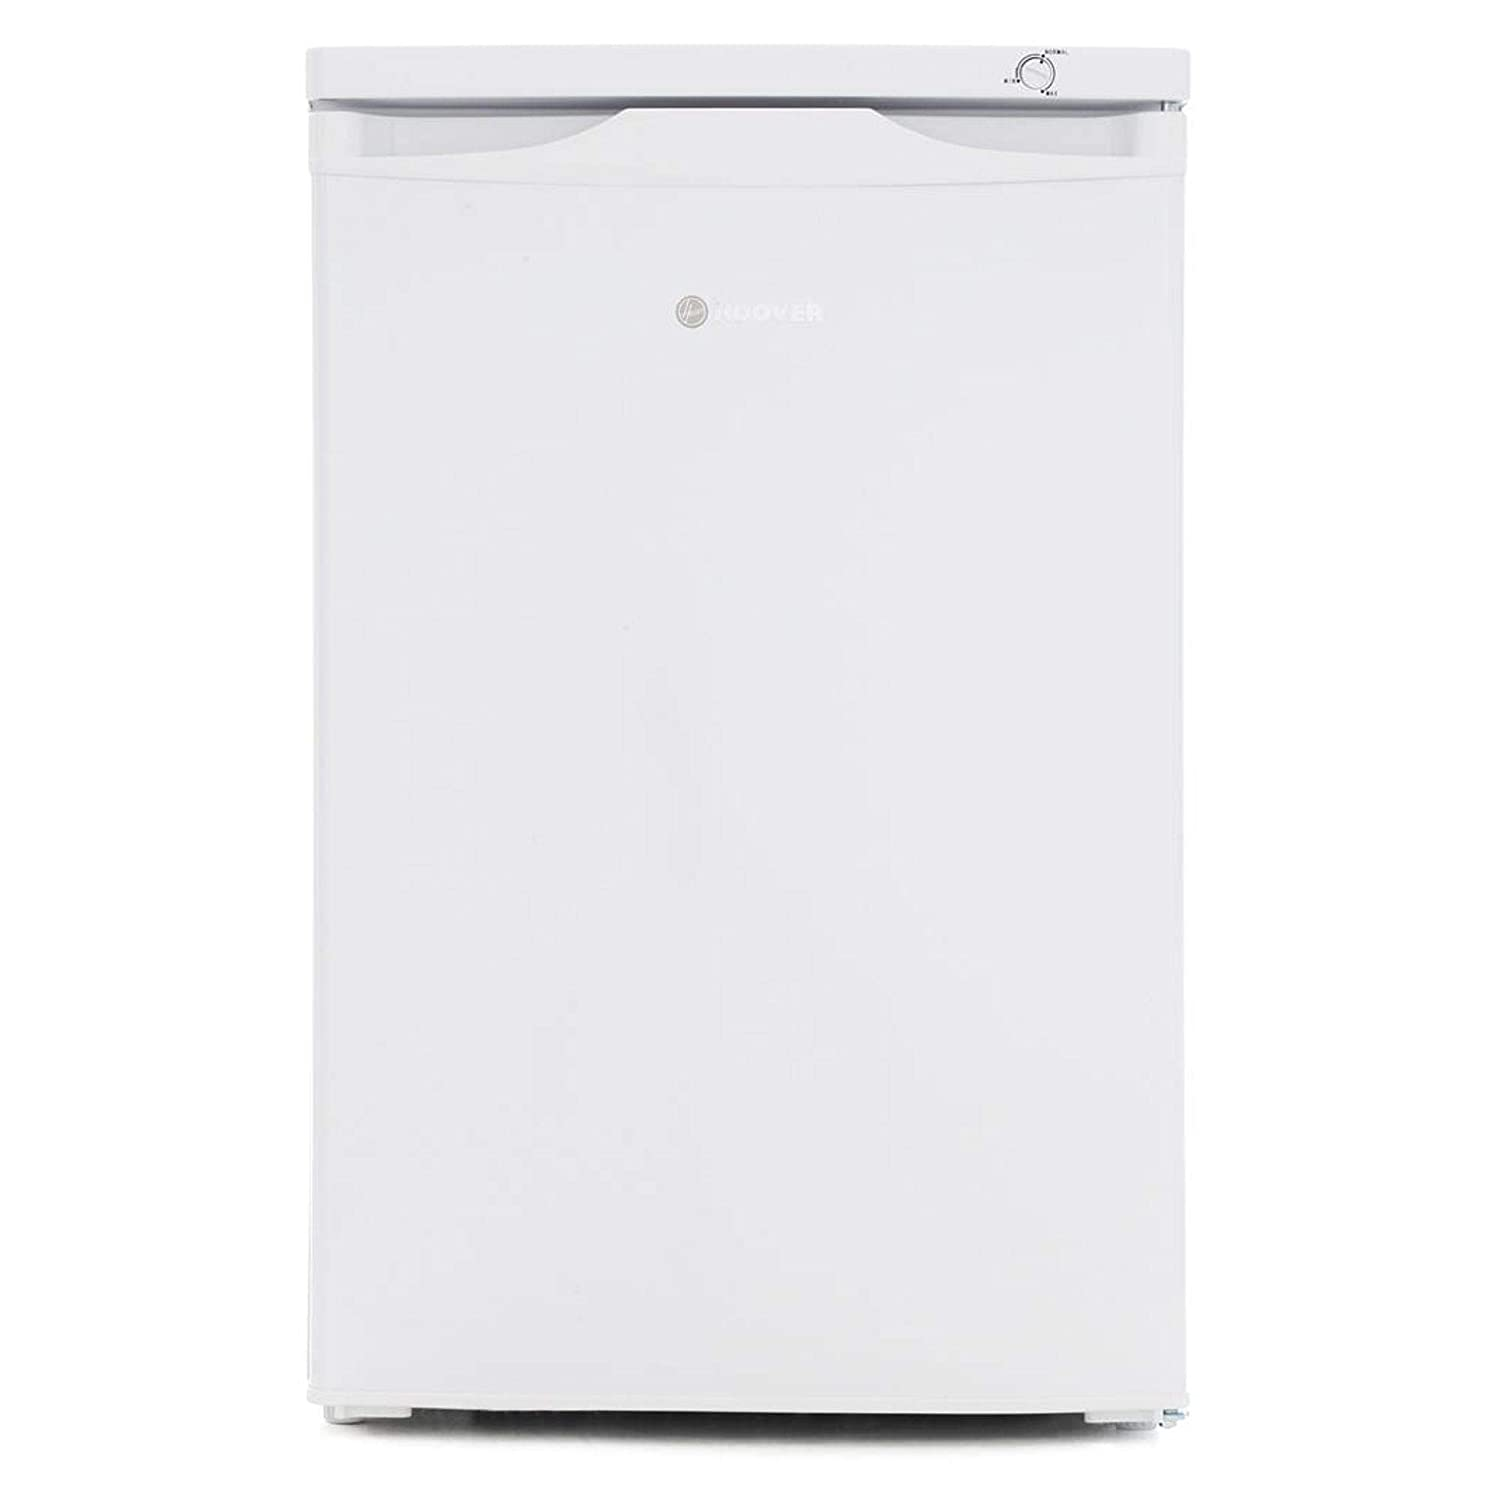 Hoover HFZE54W 82litres Upright Freezer Class A+ White